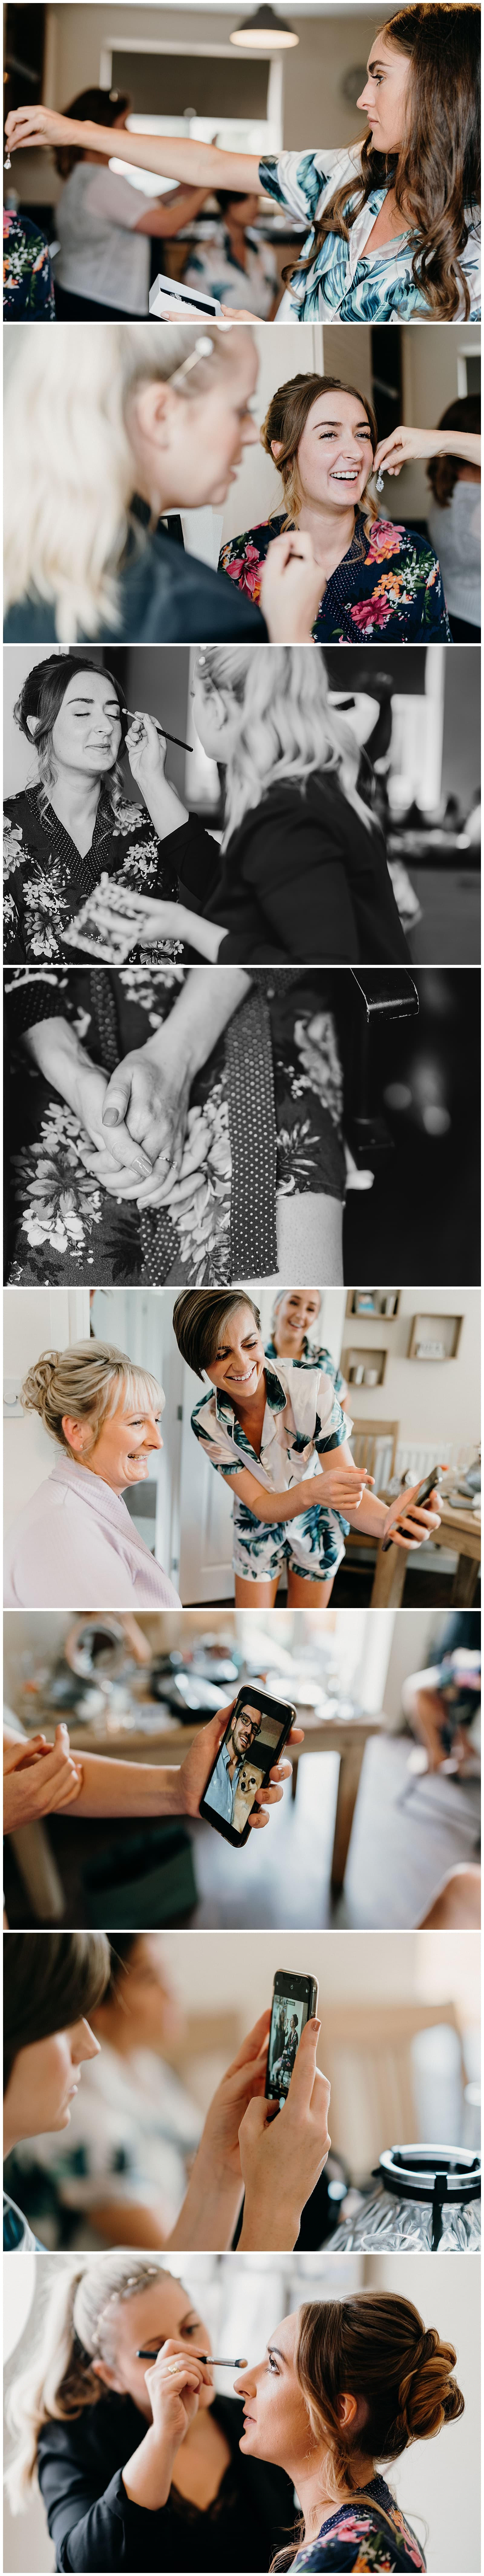 Wedding Photography at Hazel Gap Barn - bride and her bridesmaids getting ready in the morning of the wedding